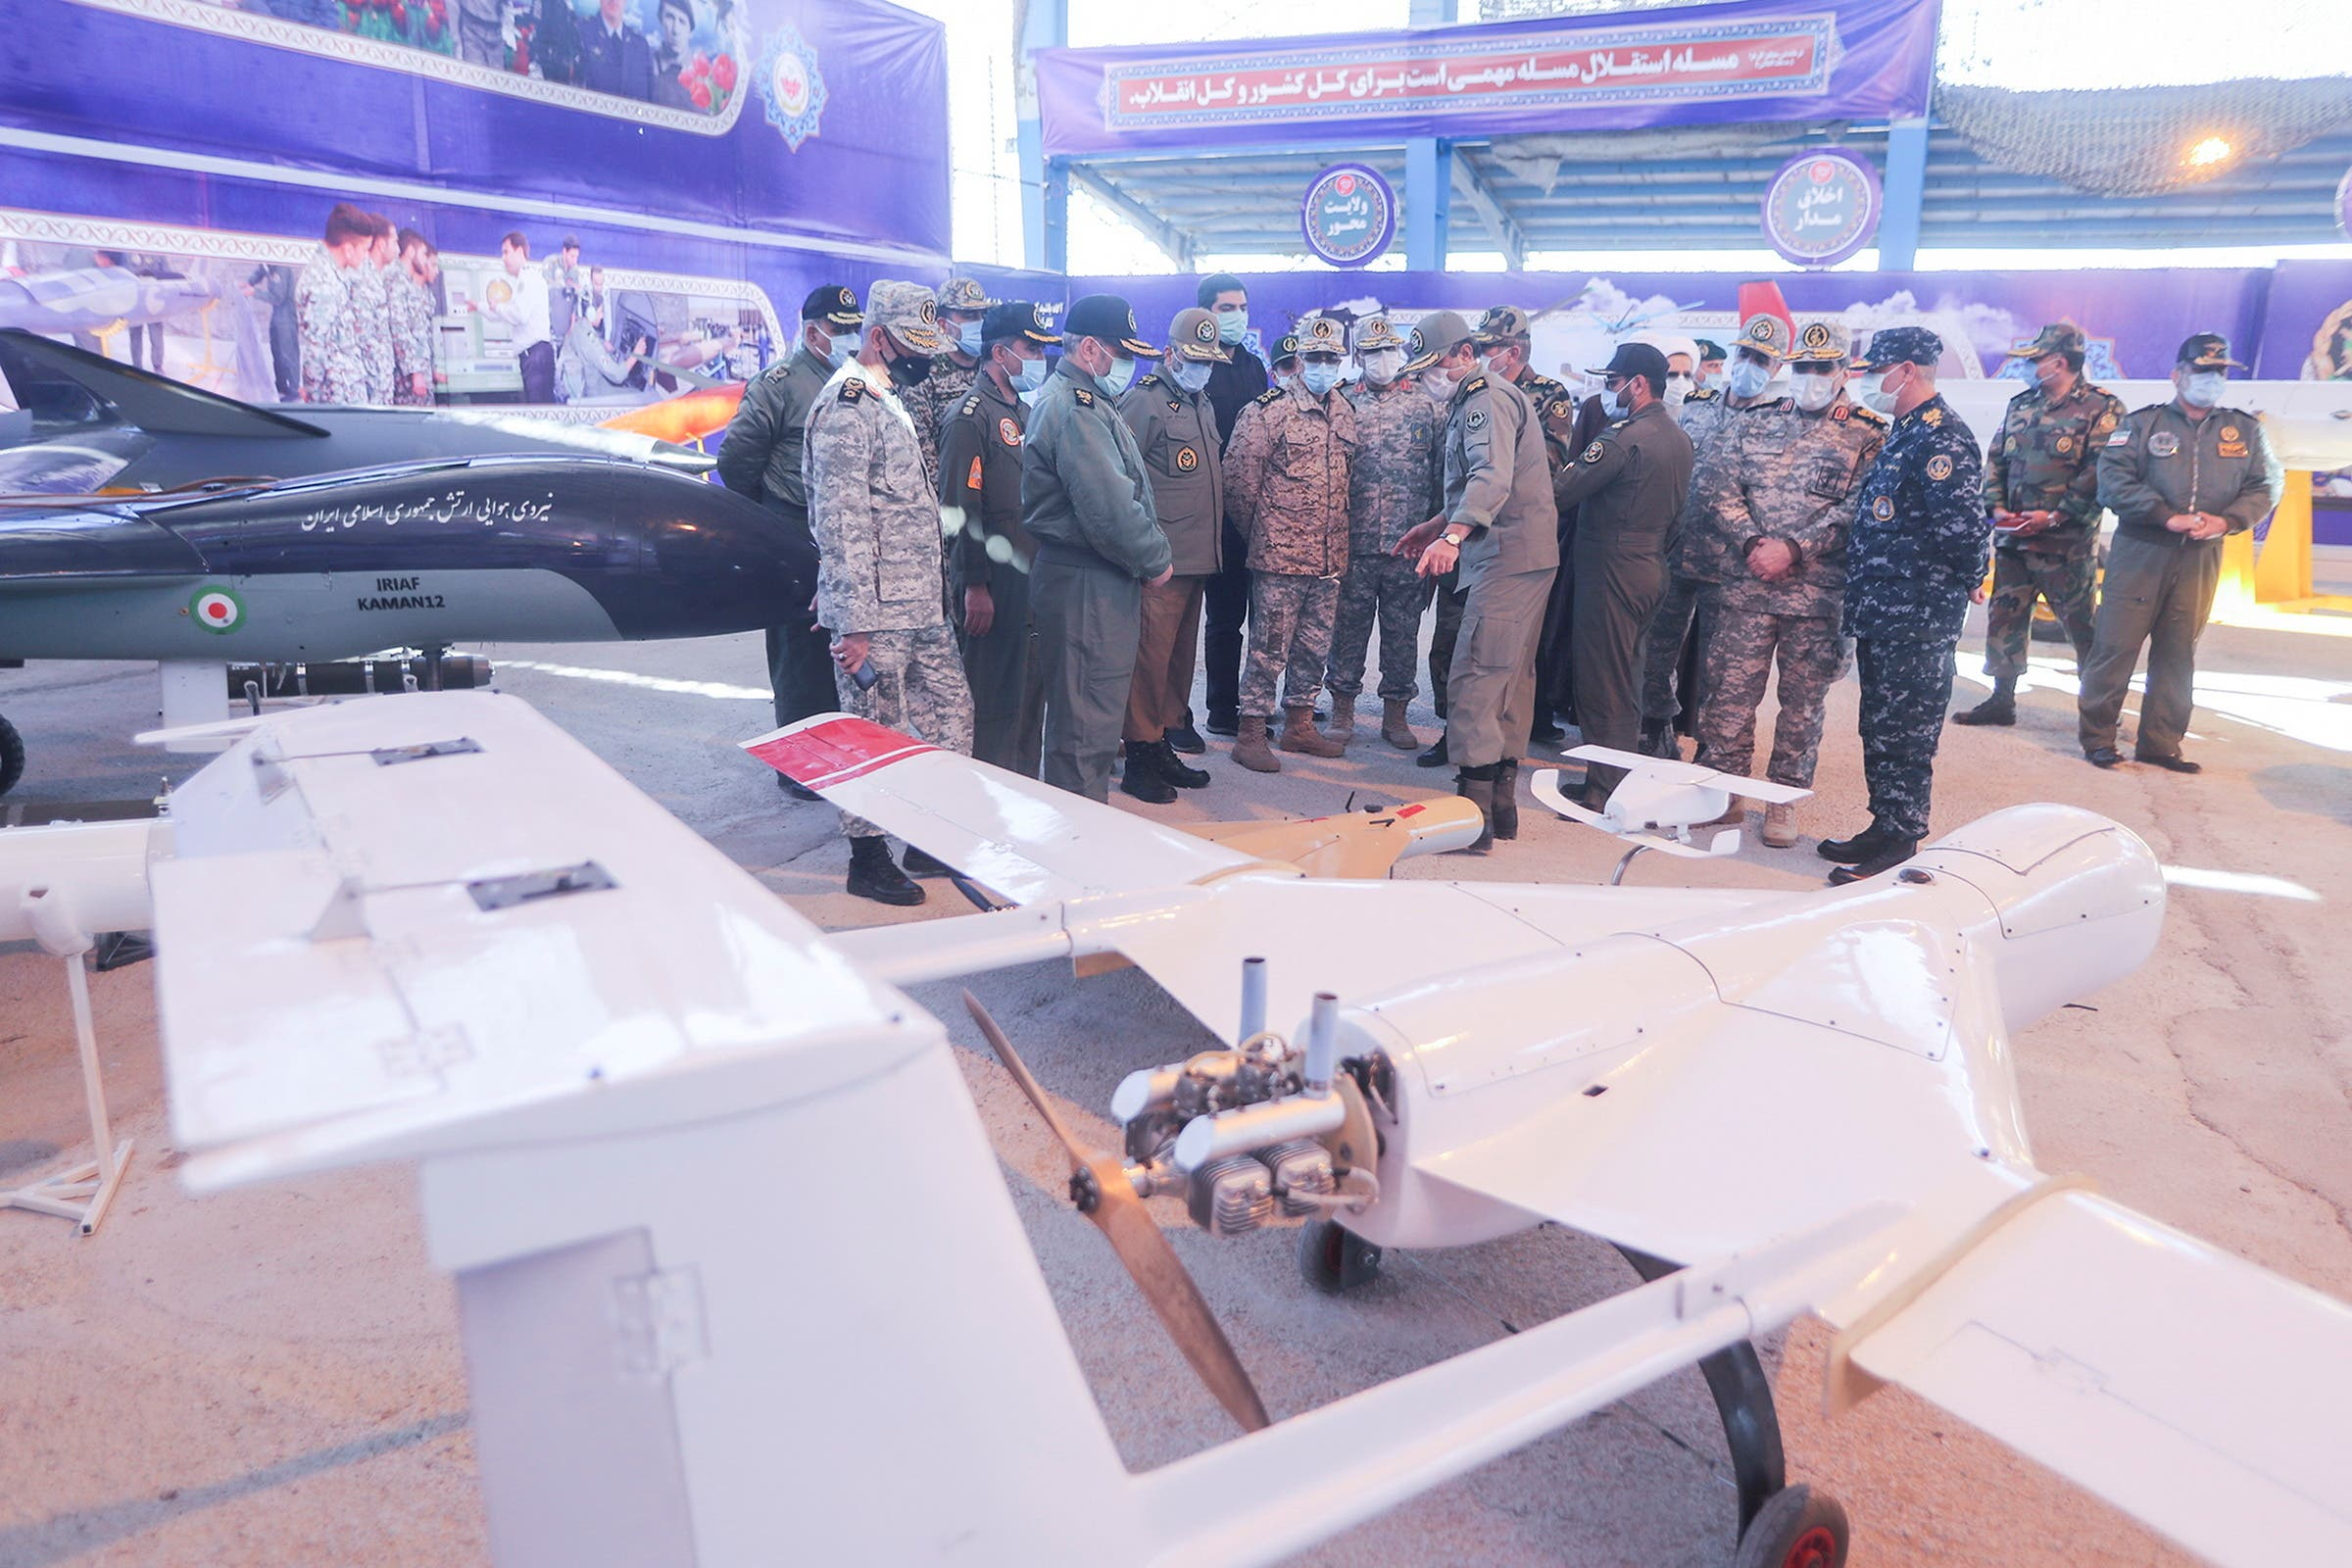 Iranian Armed Forces Chief of Staff Major General Mohammad Bagheri and other top commanders visit Iranian-made military drones, unveiled in an exhibition in Semnan, Iran. (Reuters)